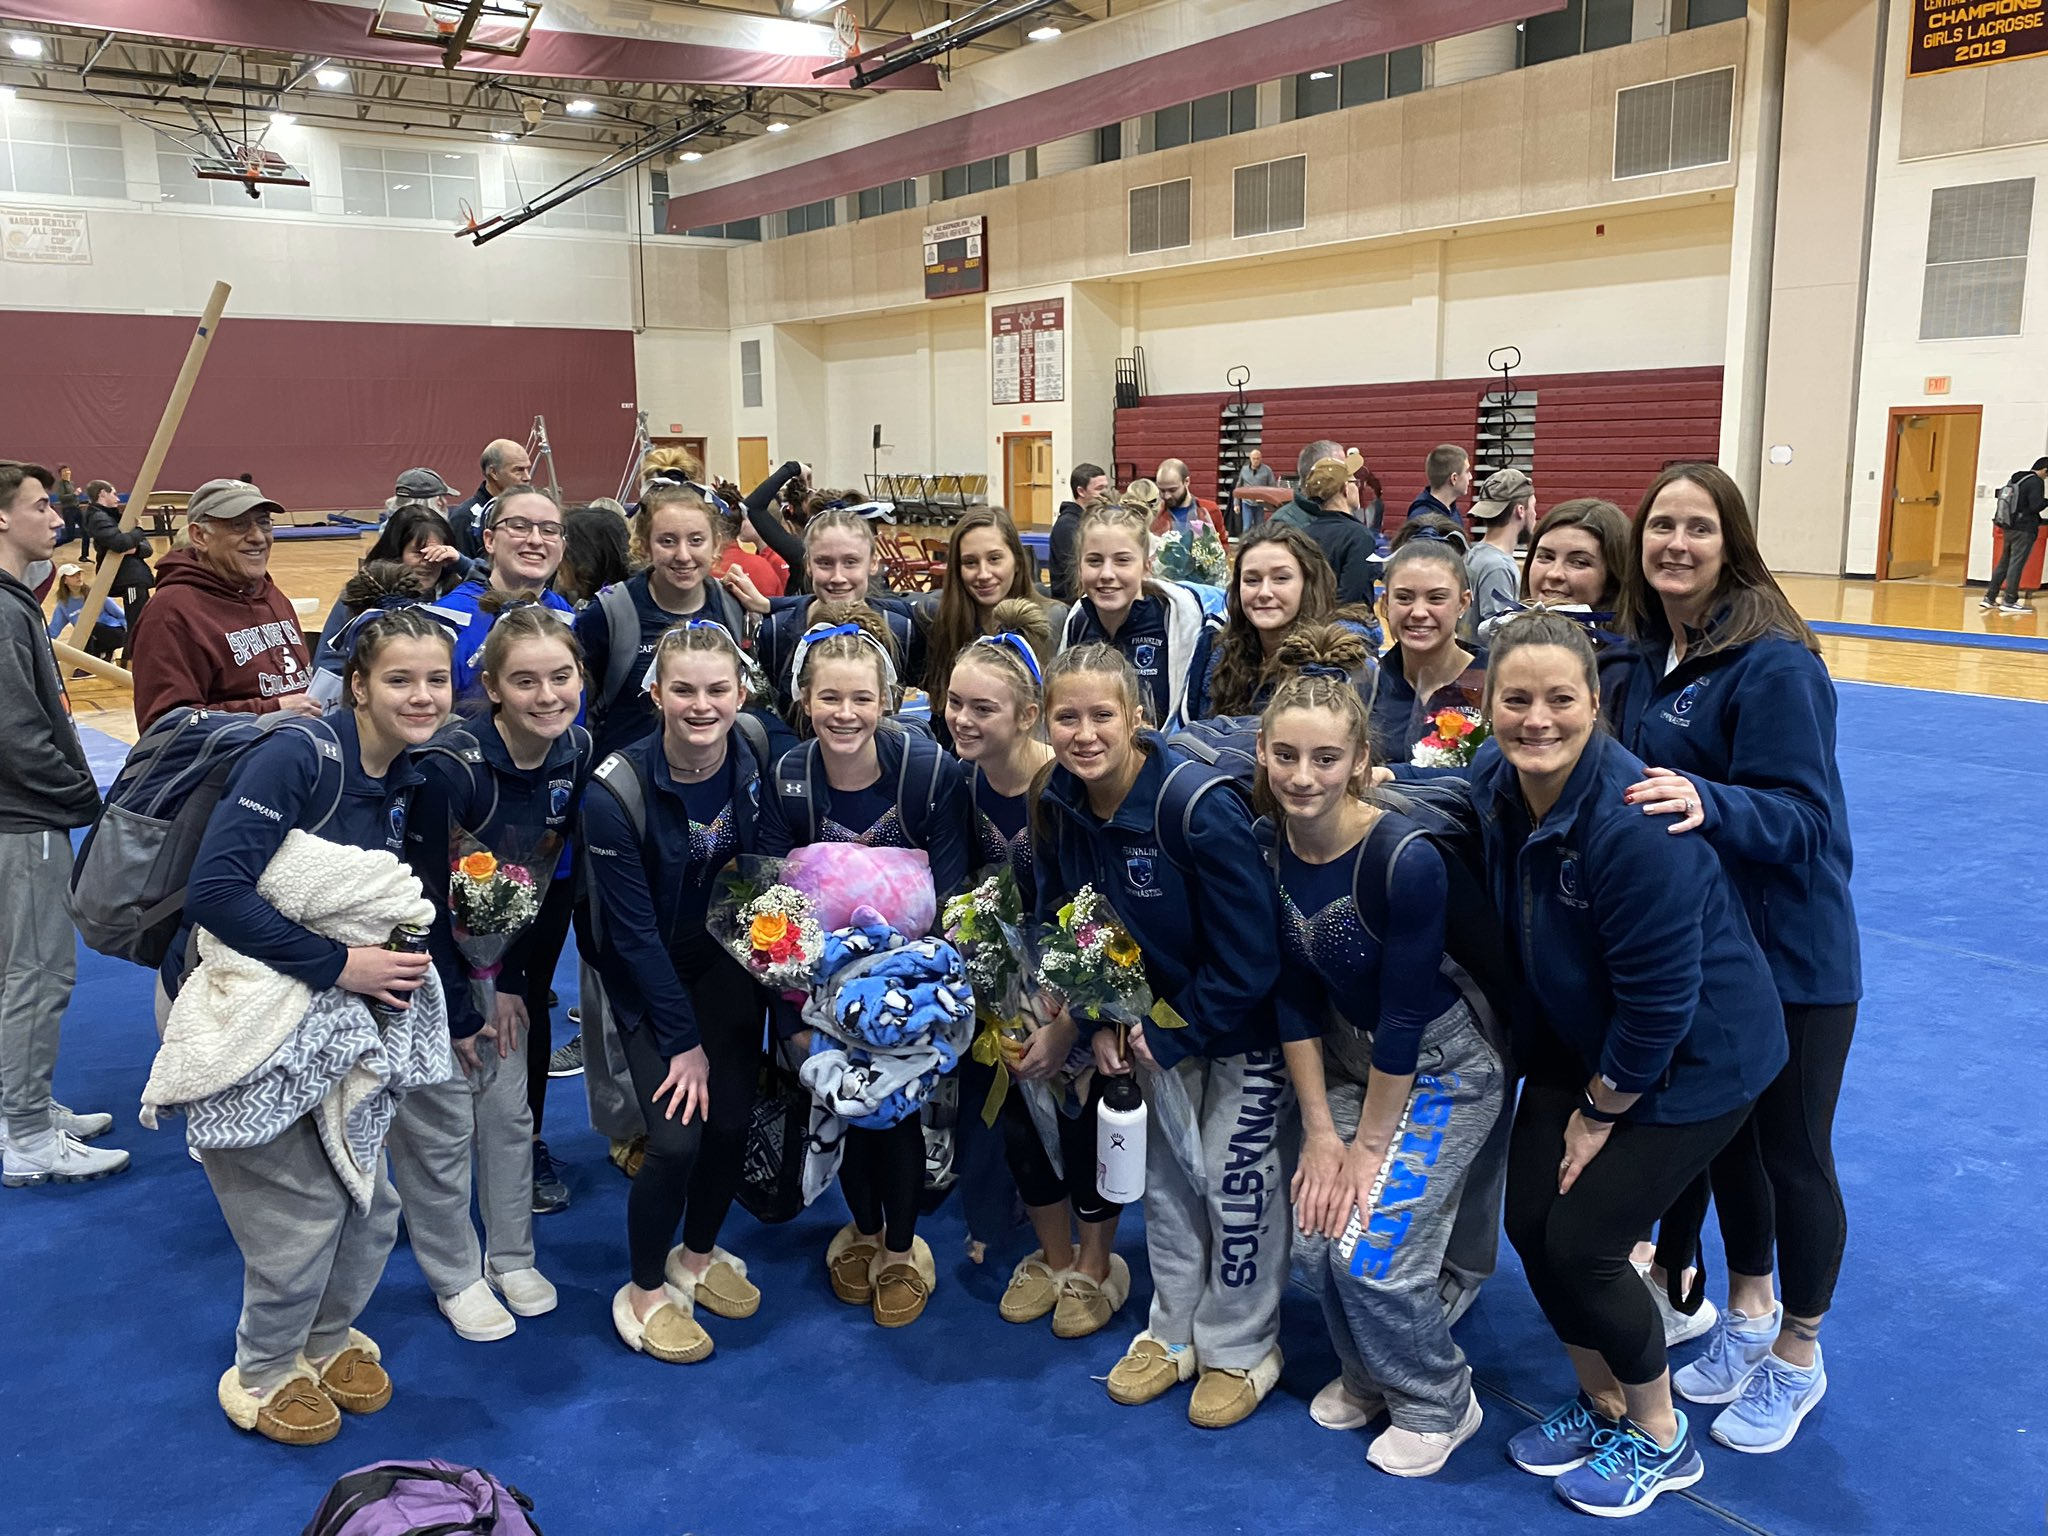 FHS gymnastics team (FHS gymnastics photo via Twitter)